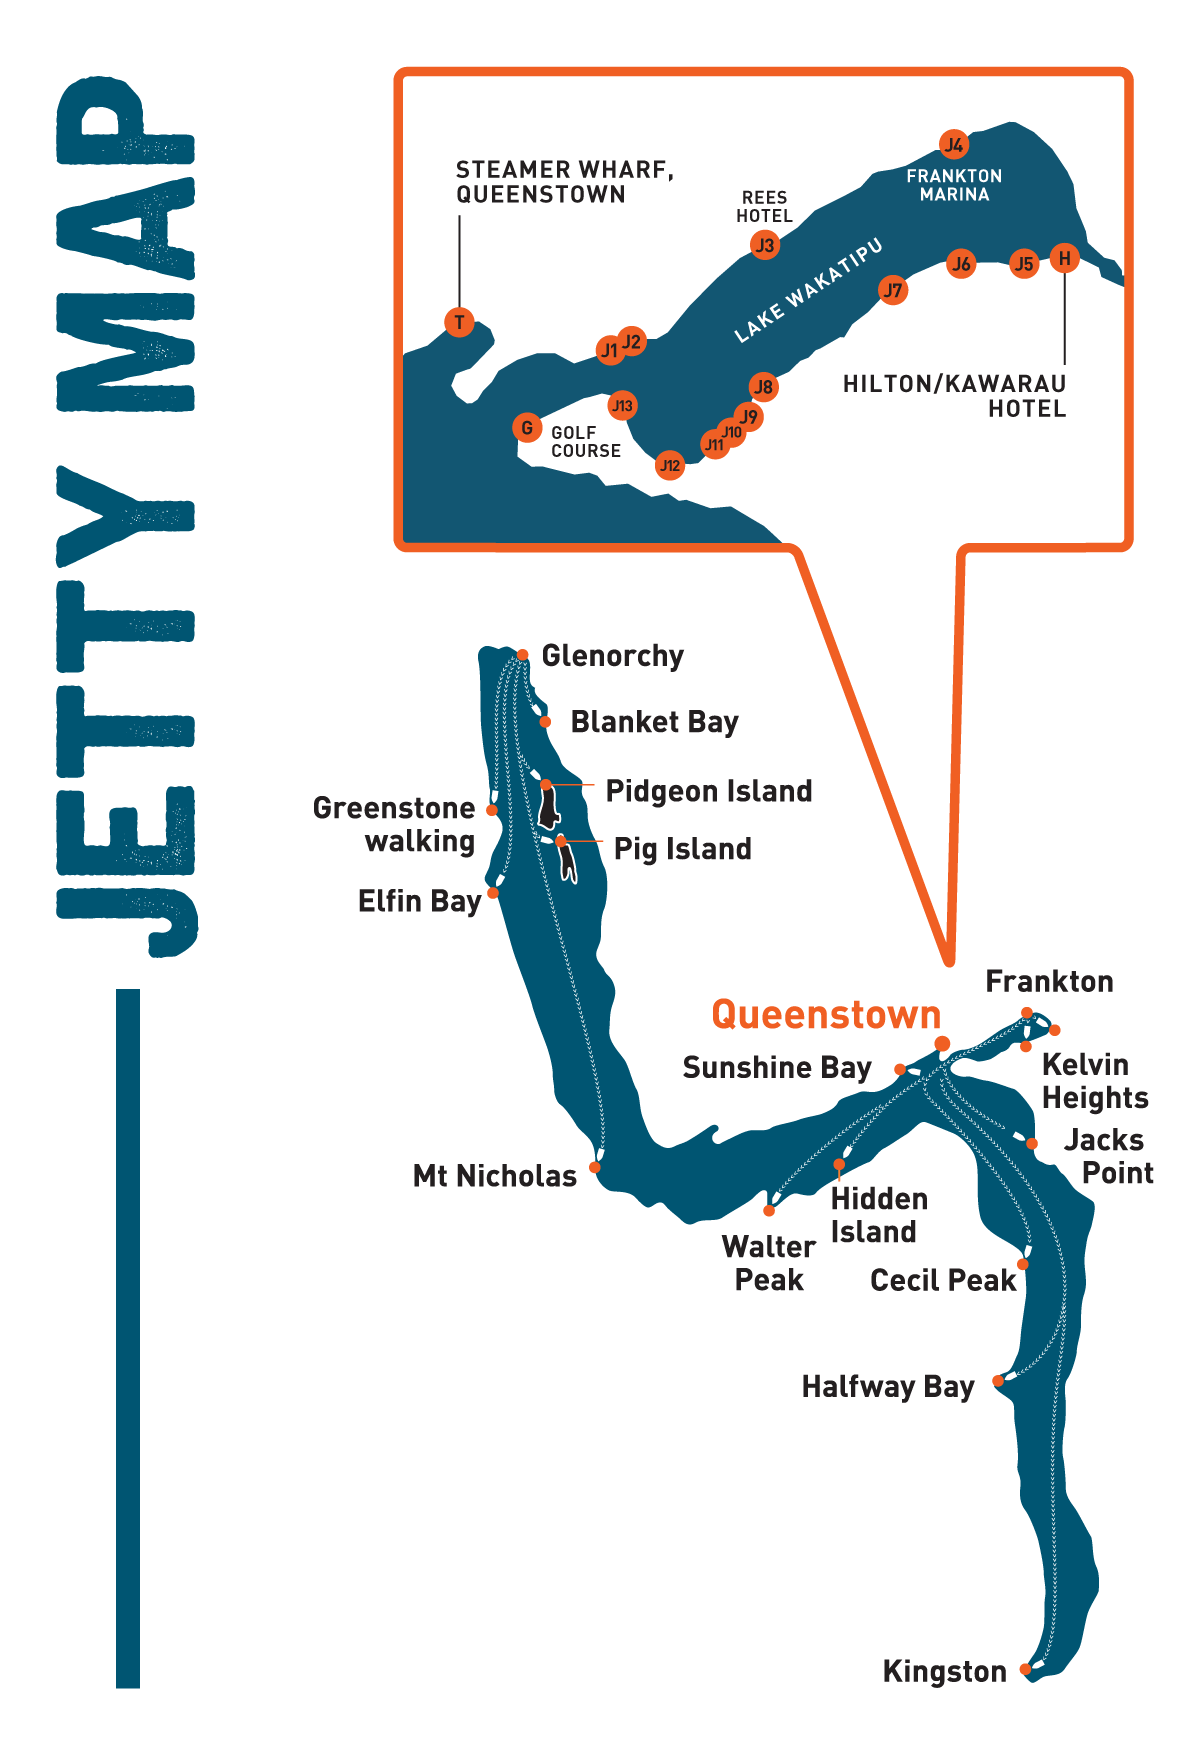 Queenstown Water Taxi - Jetty Map